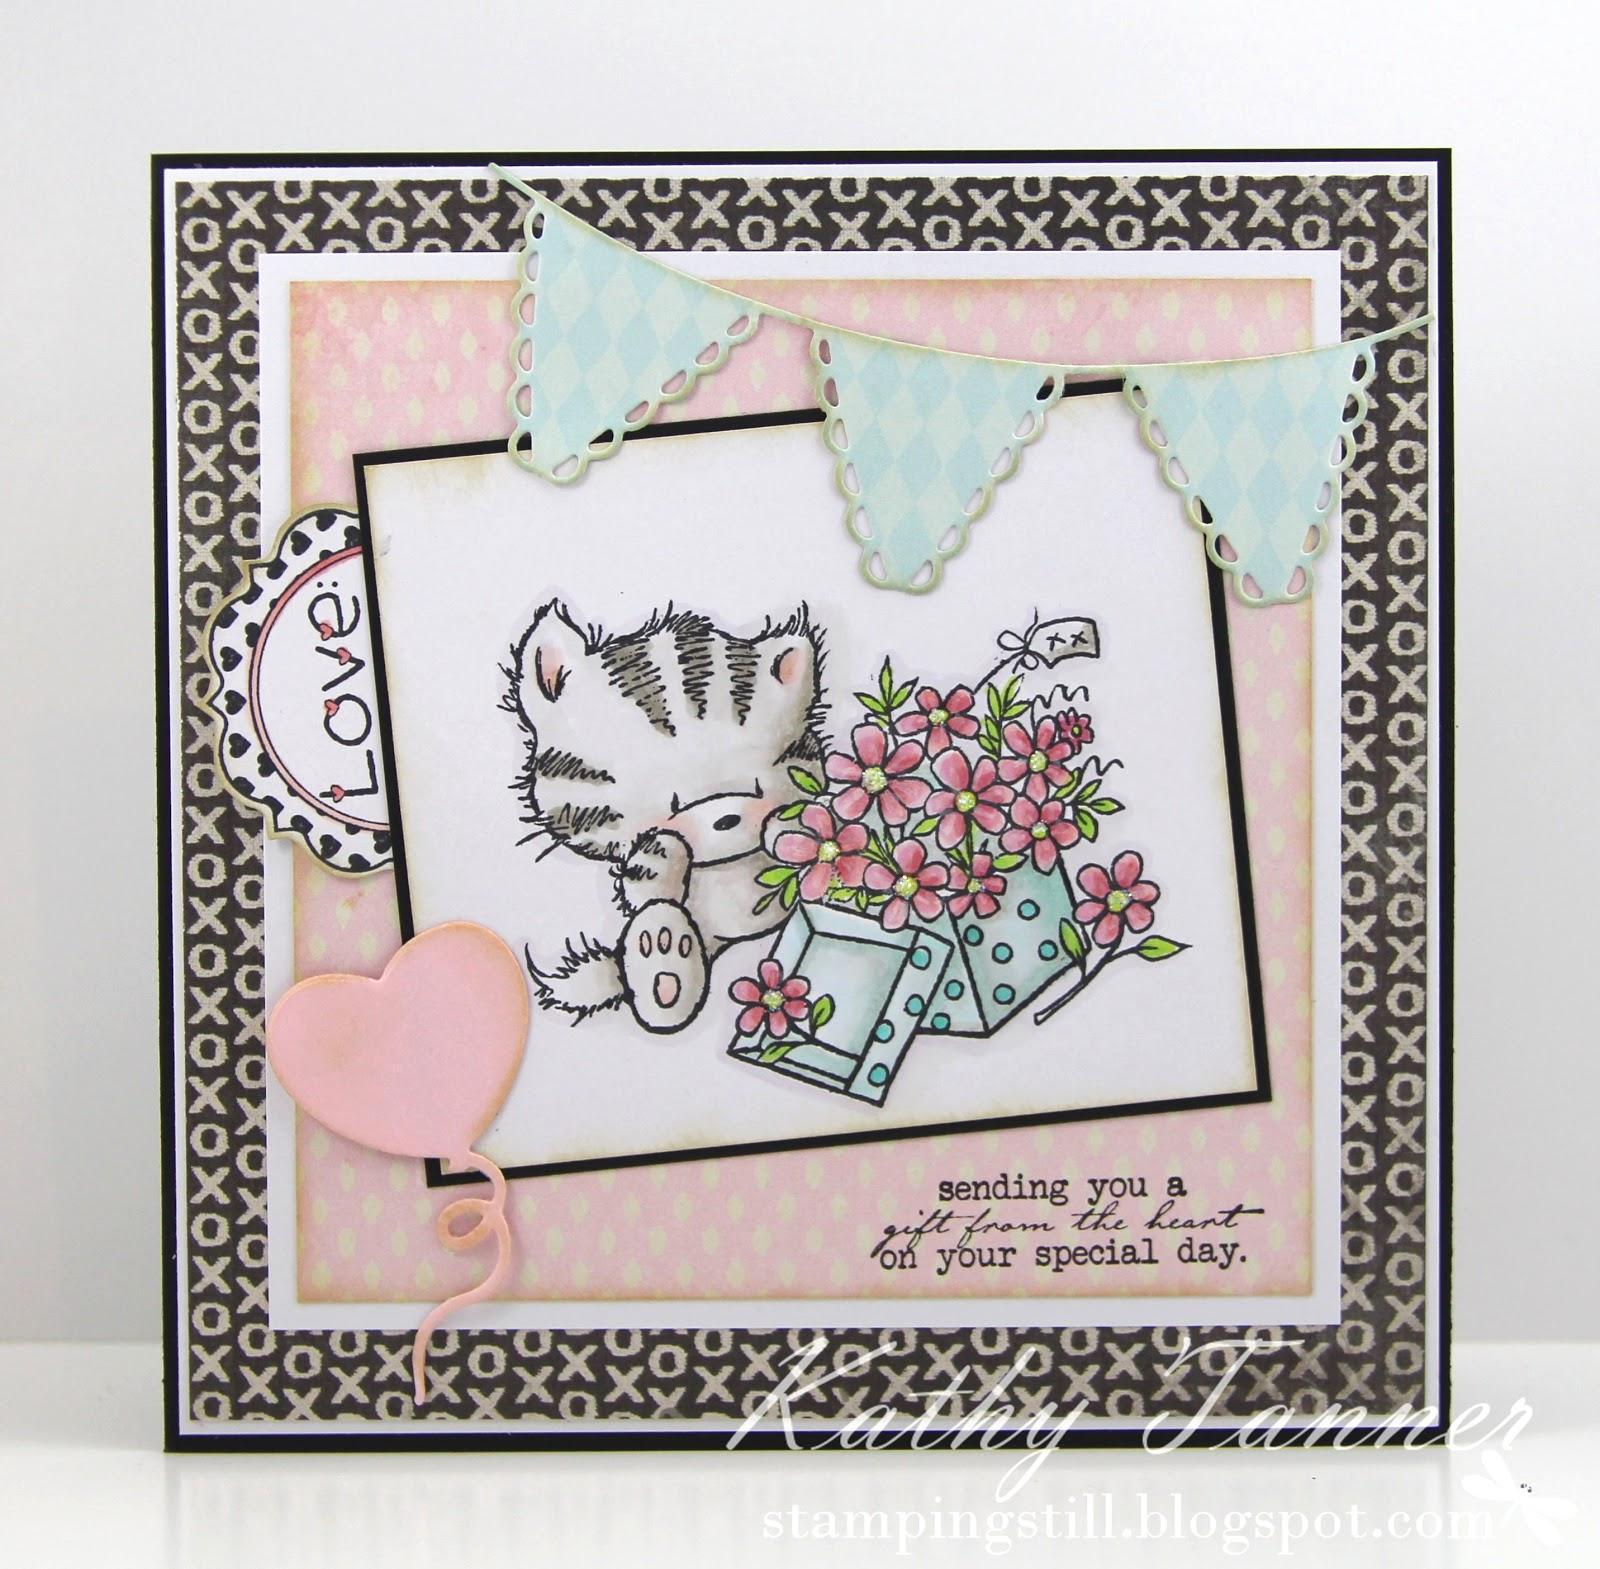 elsie with daisies, wild rose studio, definitions notables 7, whimsy stamps, frilly banner die, cc designs, copics